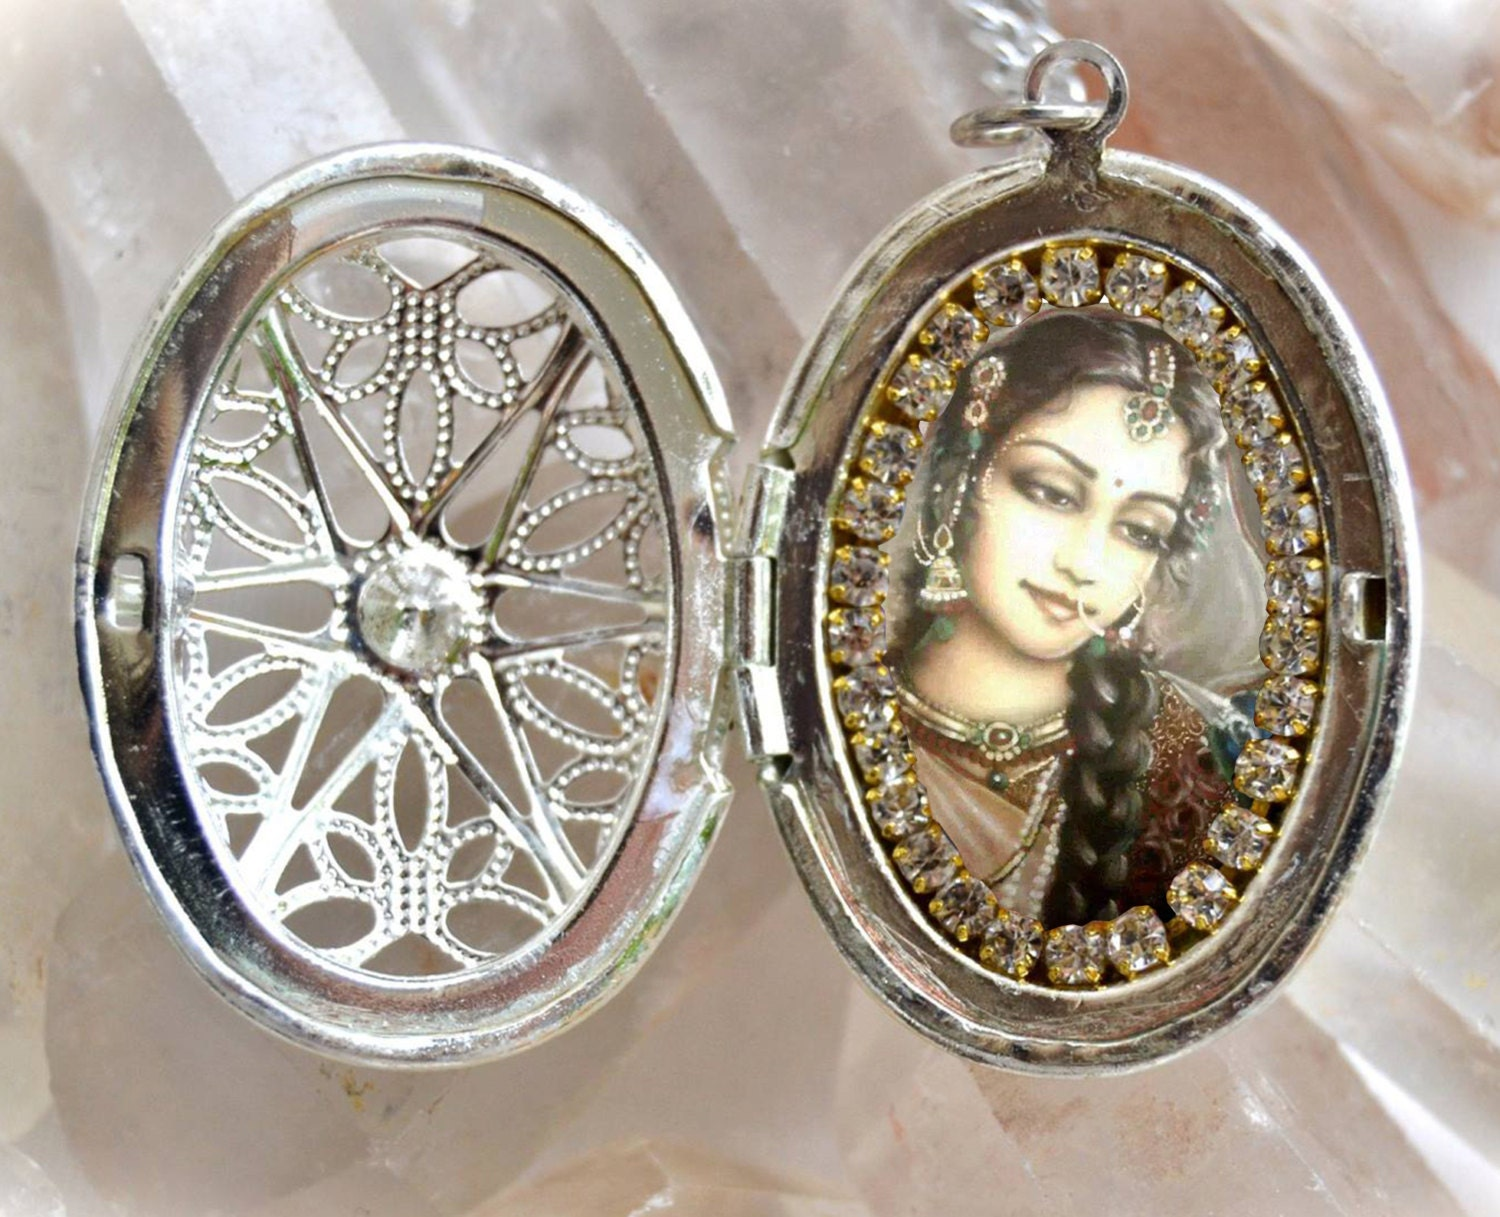 product by res message locket initial a an lockets kimberley unique truly personal selwood is this gift with low hidden and